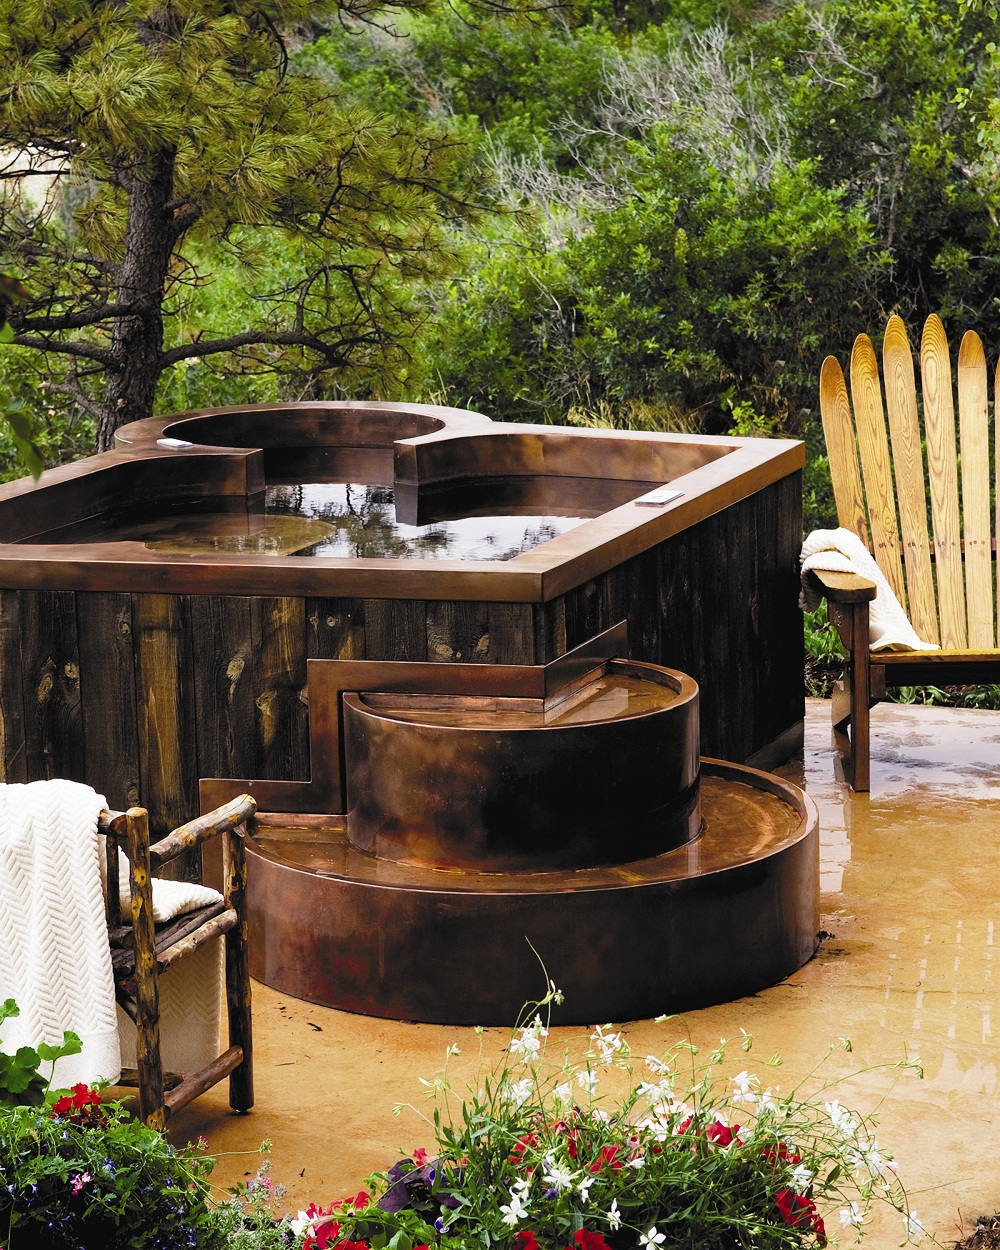 Outdoor Specialty Hot Tub Copper Spa with Private Therapy Seat, Bench Seating, Cool Down Area, Extended Stairway